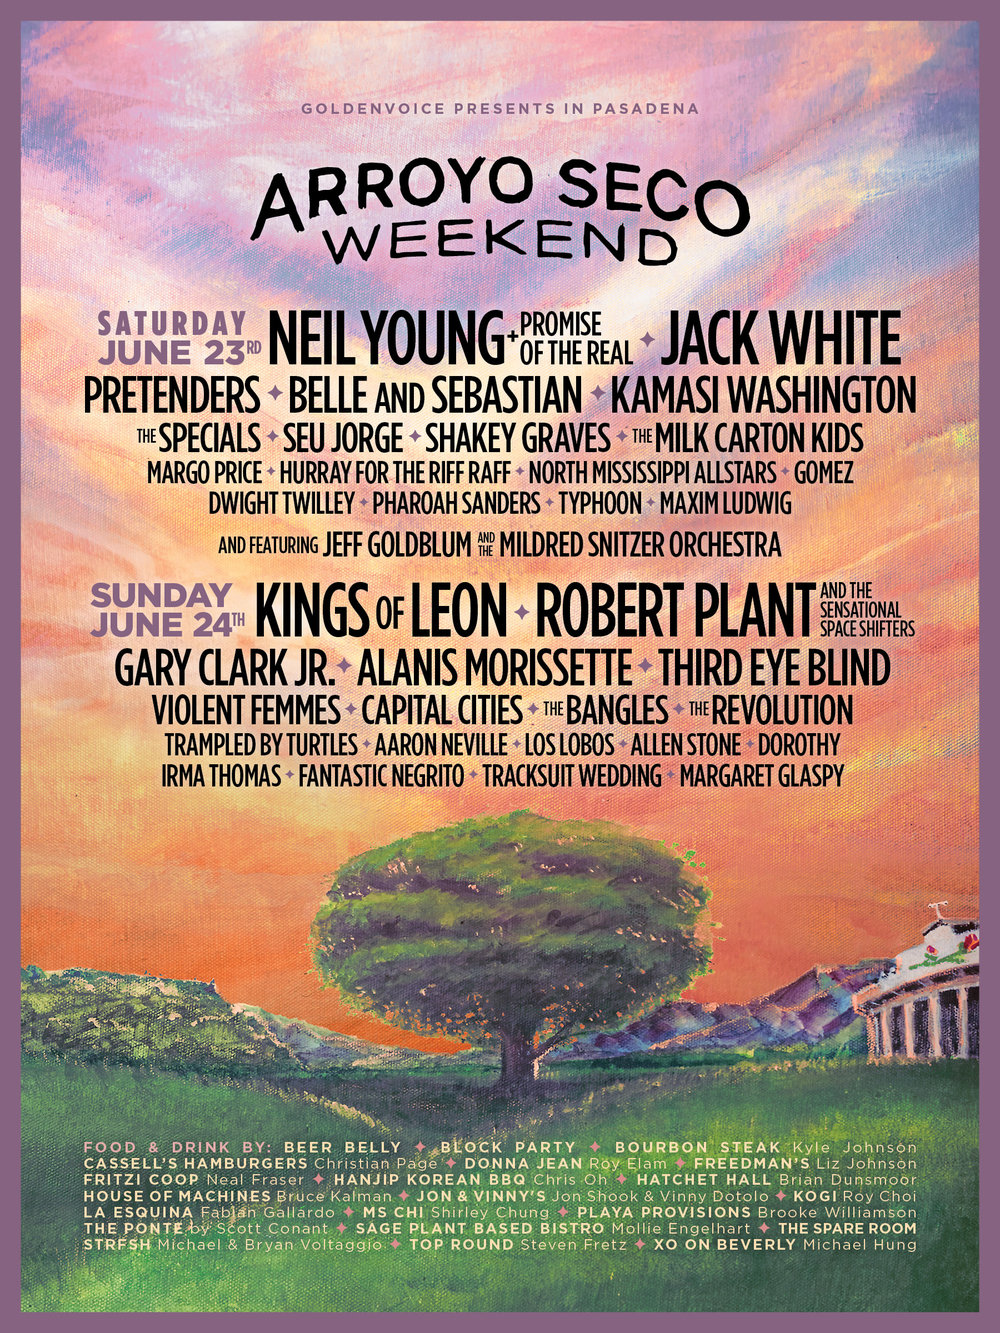 Arroyo Seco Weekend 2018 Poster